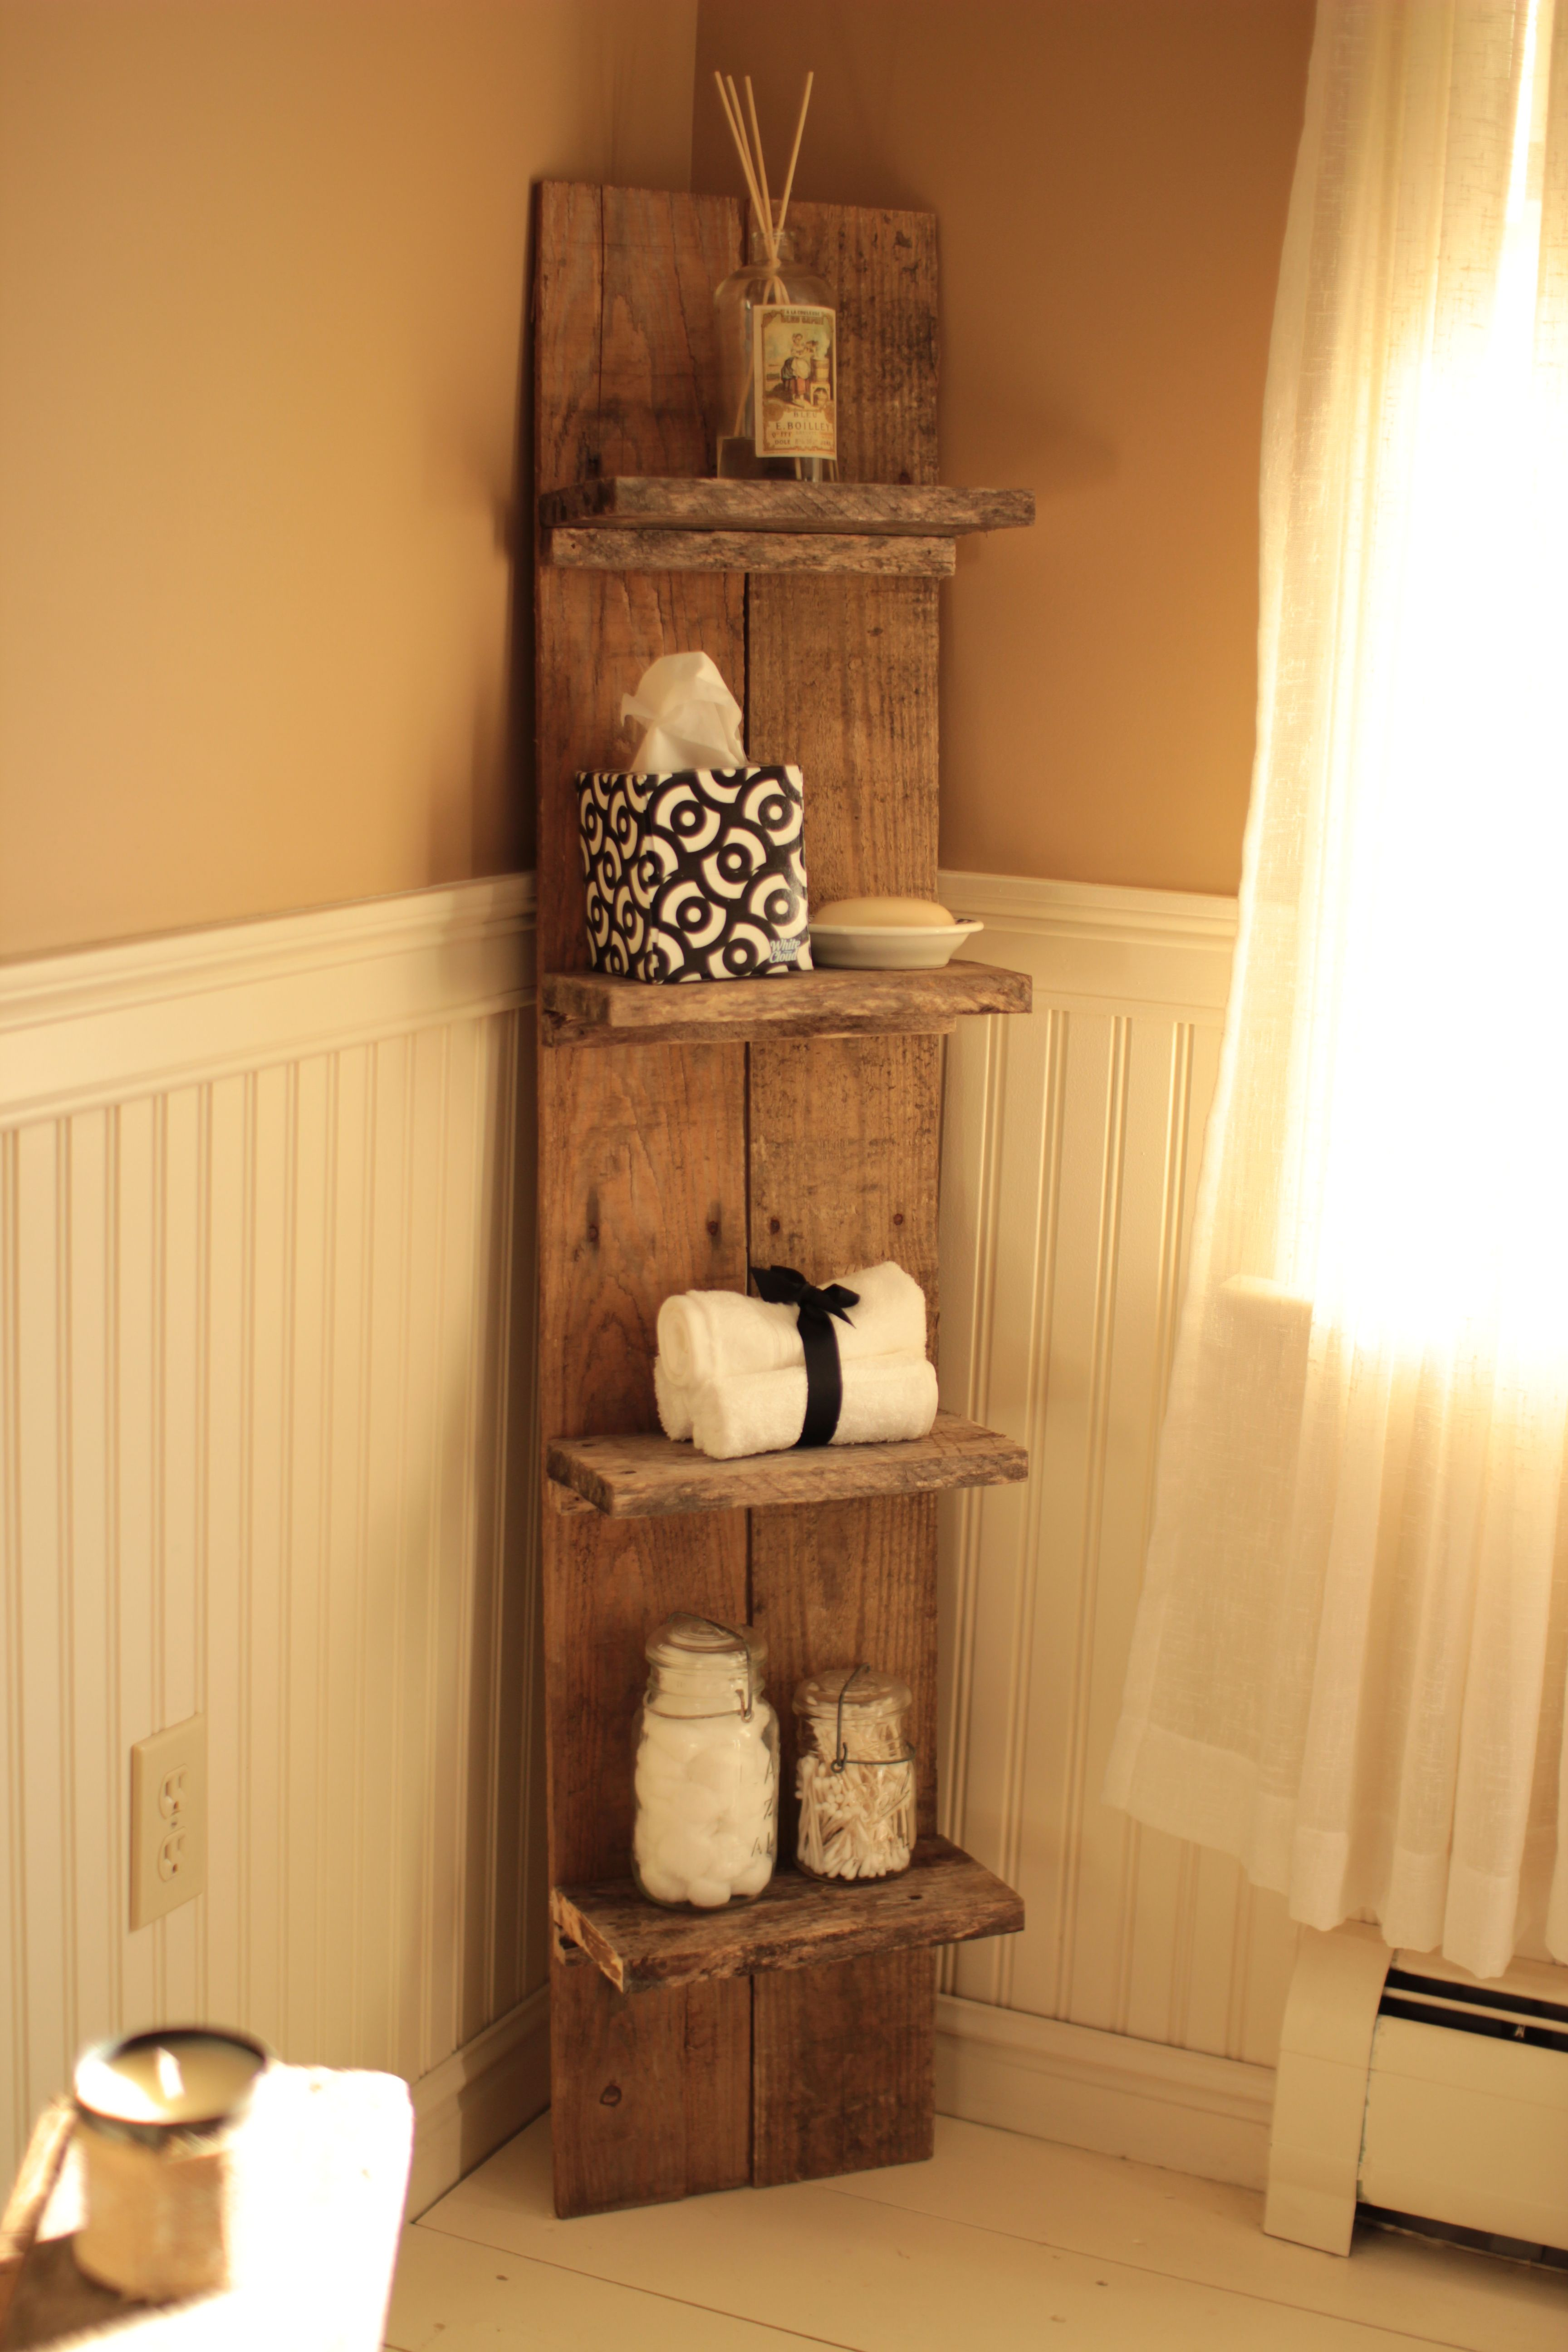 I Made A Small Pallet Shelf To Fit In Bathroom Just So There Would Be Some Extra Storage Was Lucky Find With Long And Wide Planks